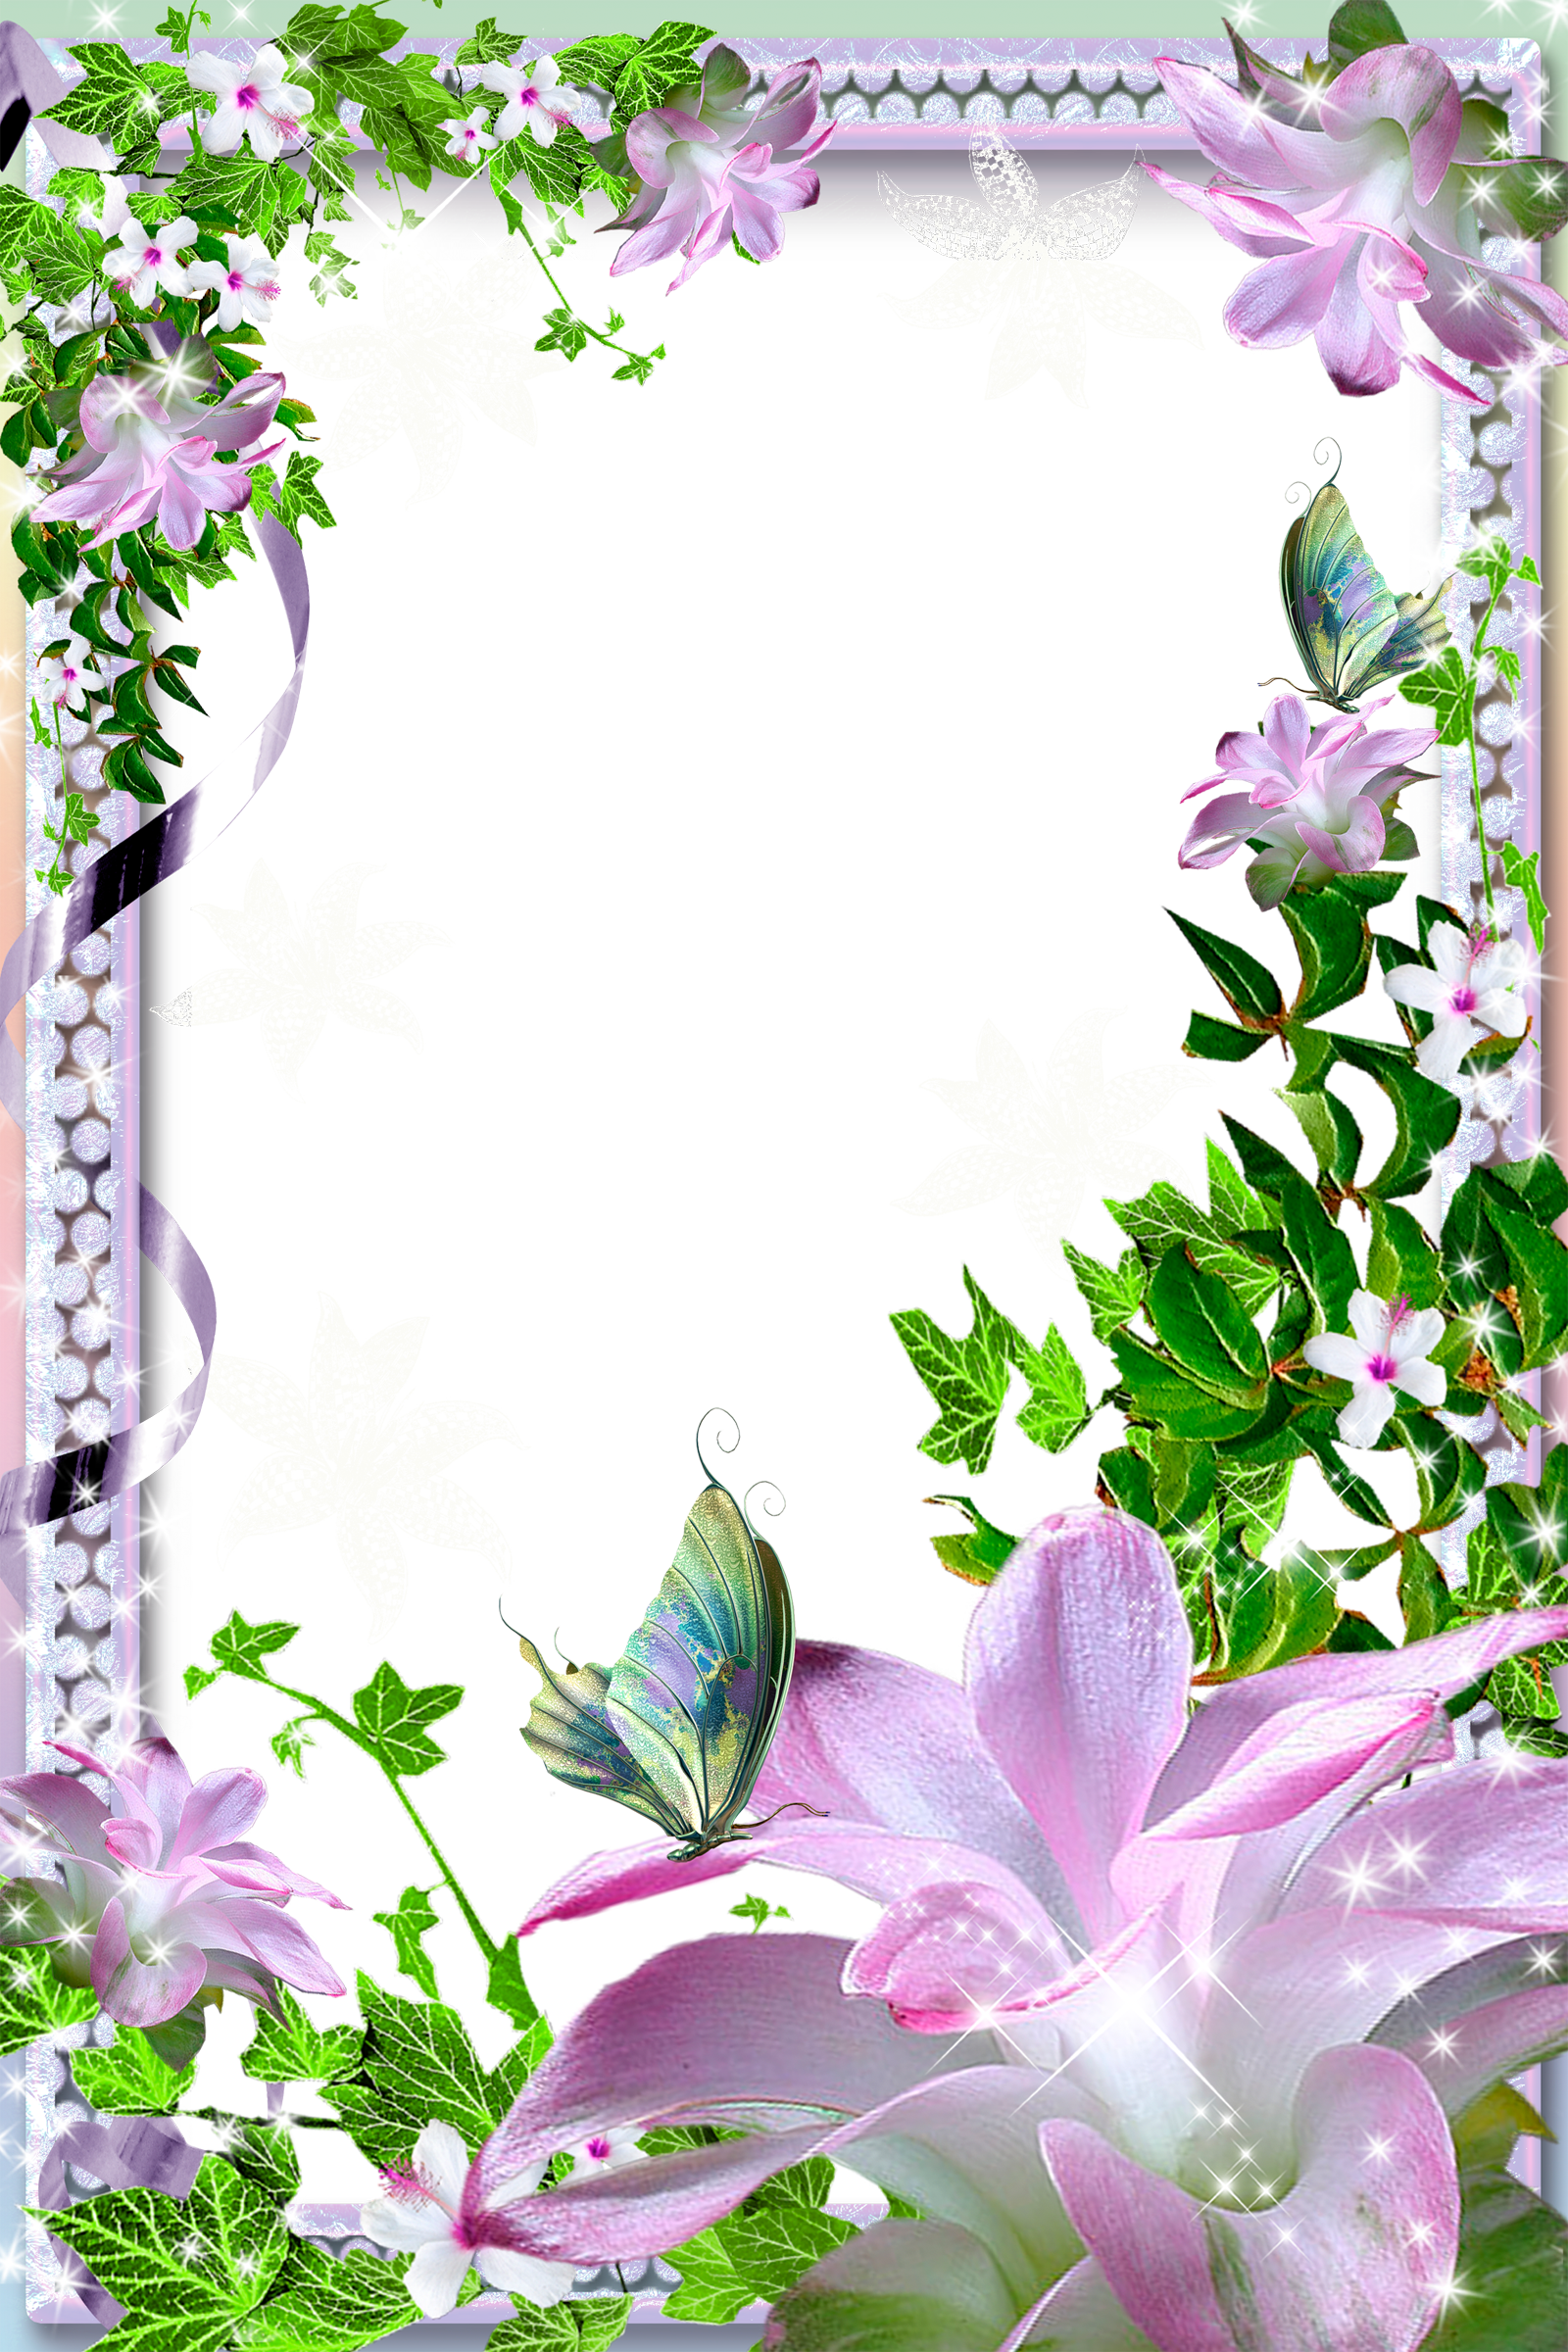 Lily flower border clipart clip art library stock Transparent PNG Photo Frame with Pink Lilies | GREAT GRAPHICS FOR ... clip art library stock